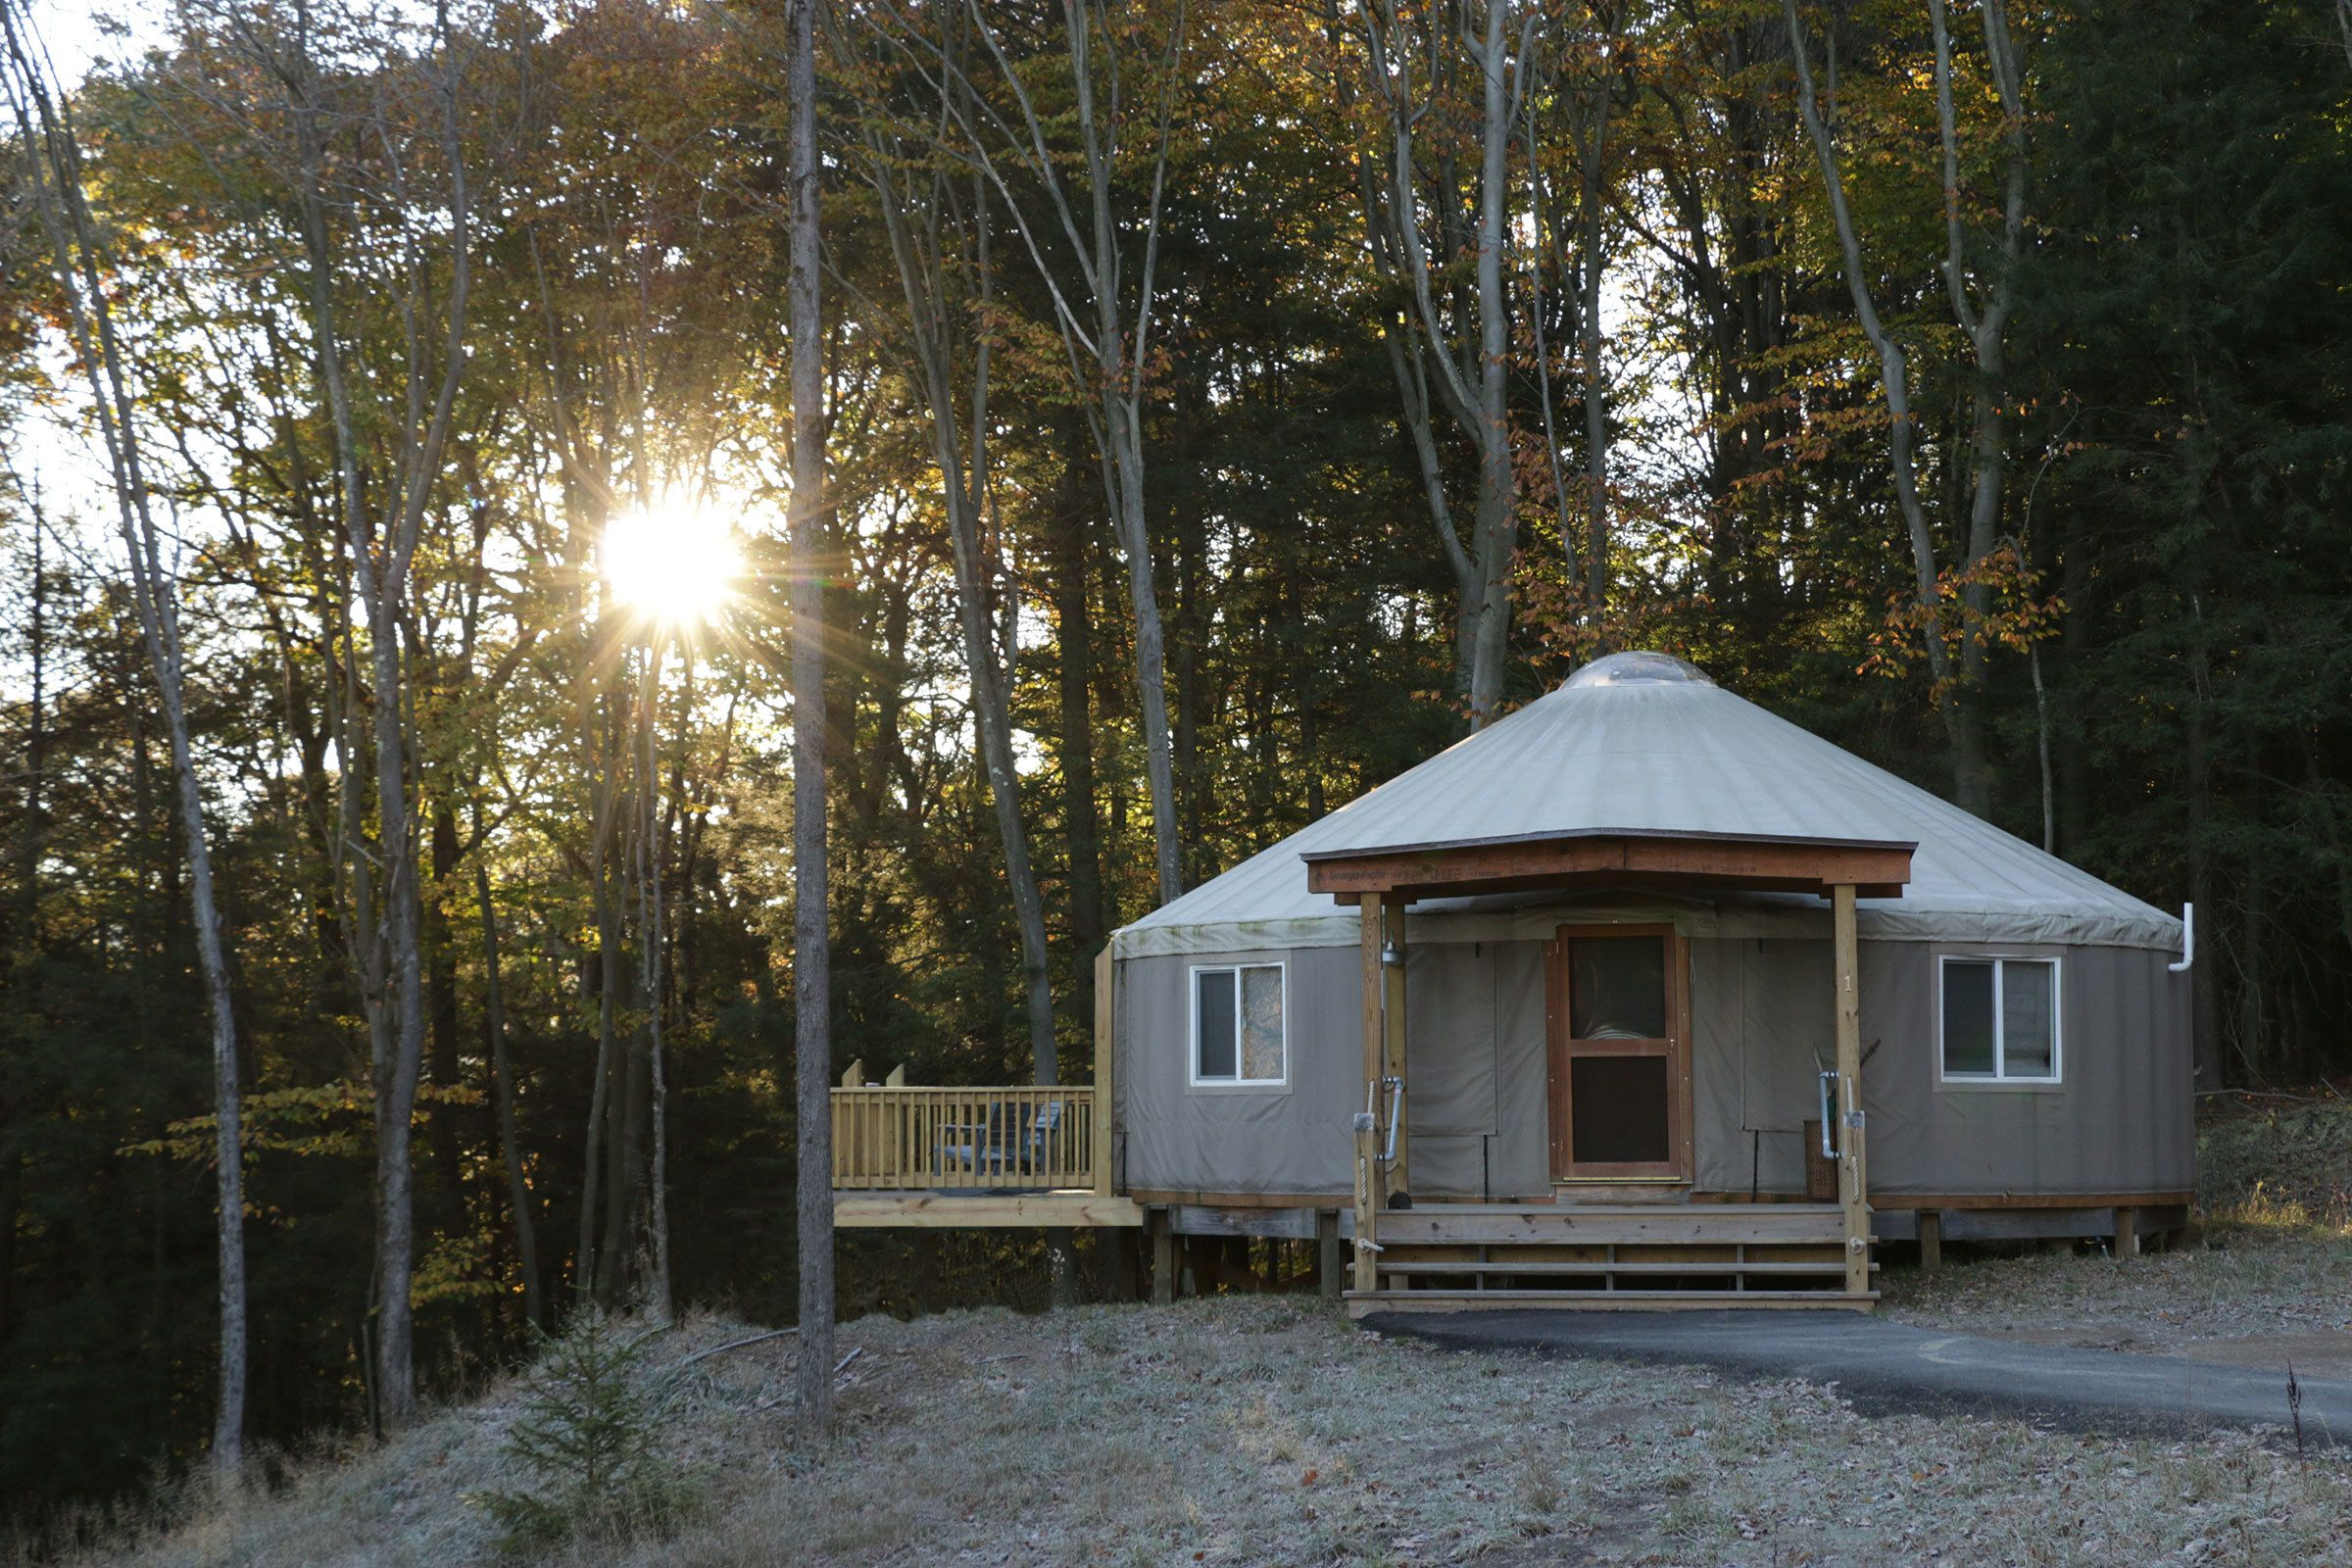 9 yurt vacation rentals for the modern alternative camper dwell